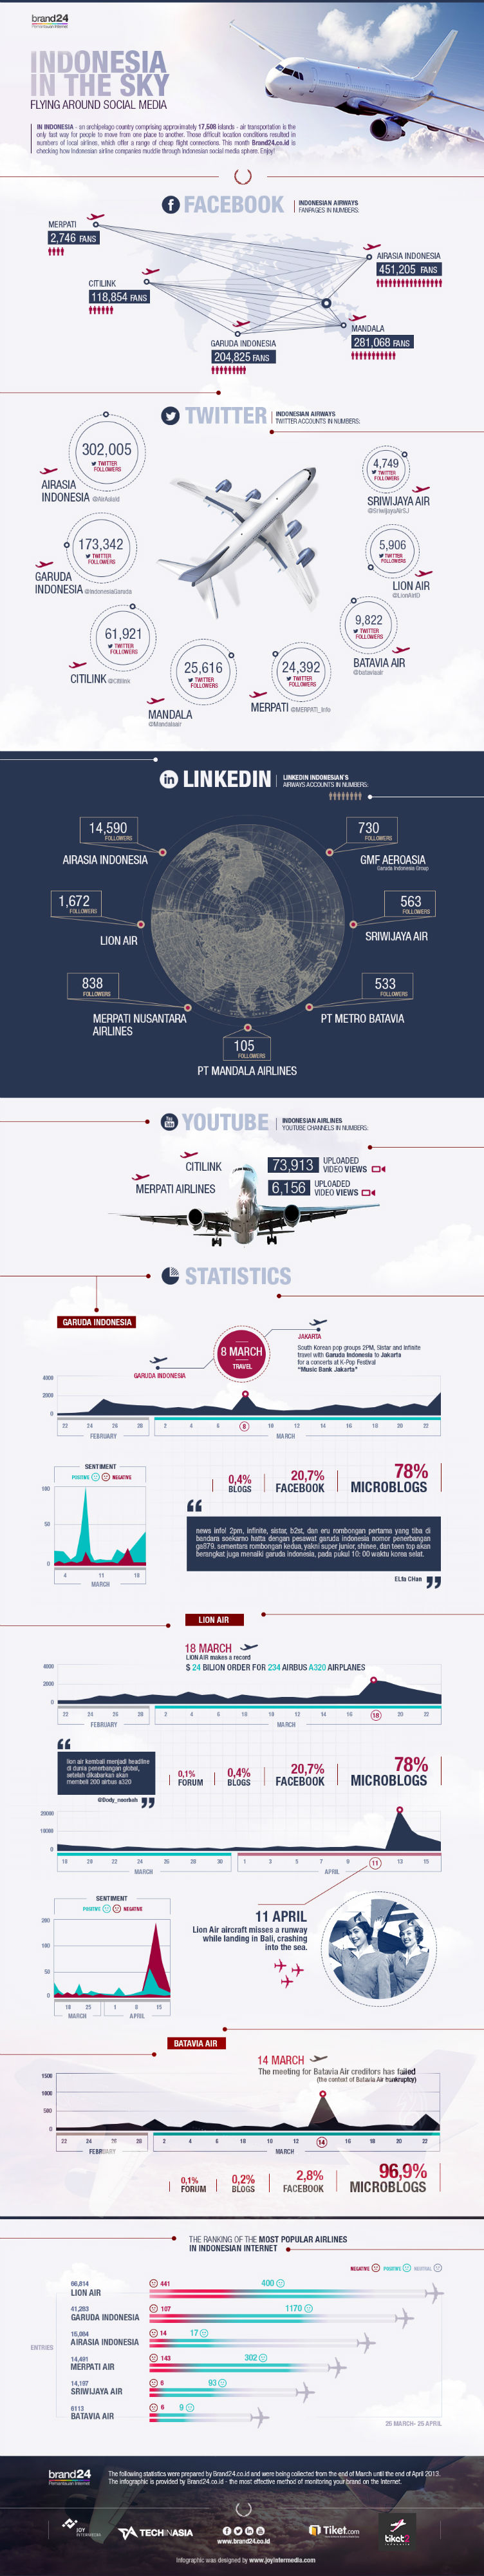 indonesia in the sky brand24 infographic